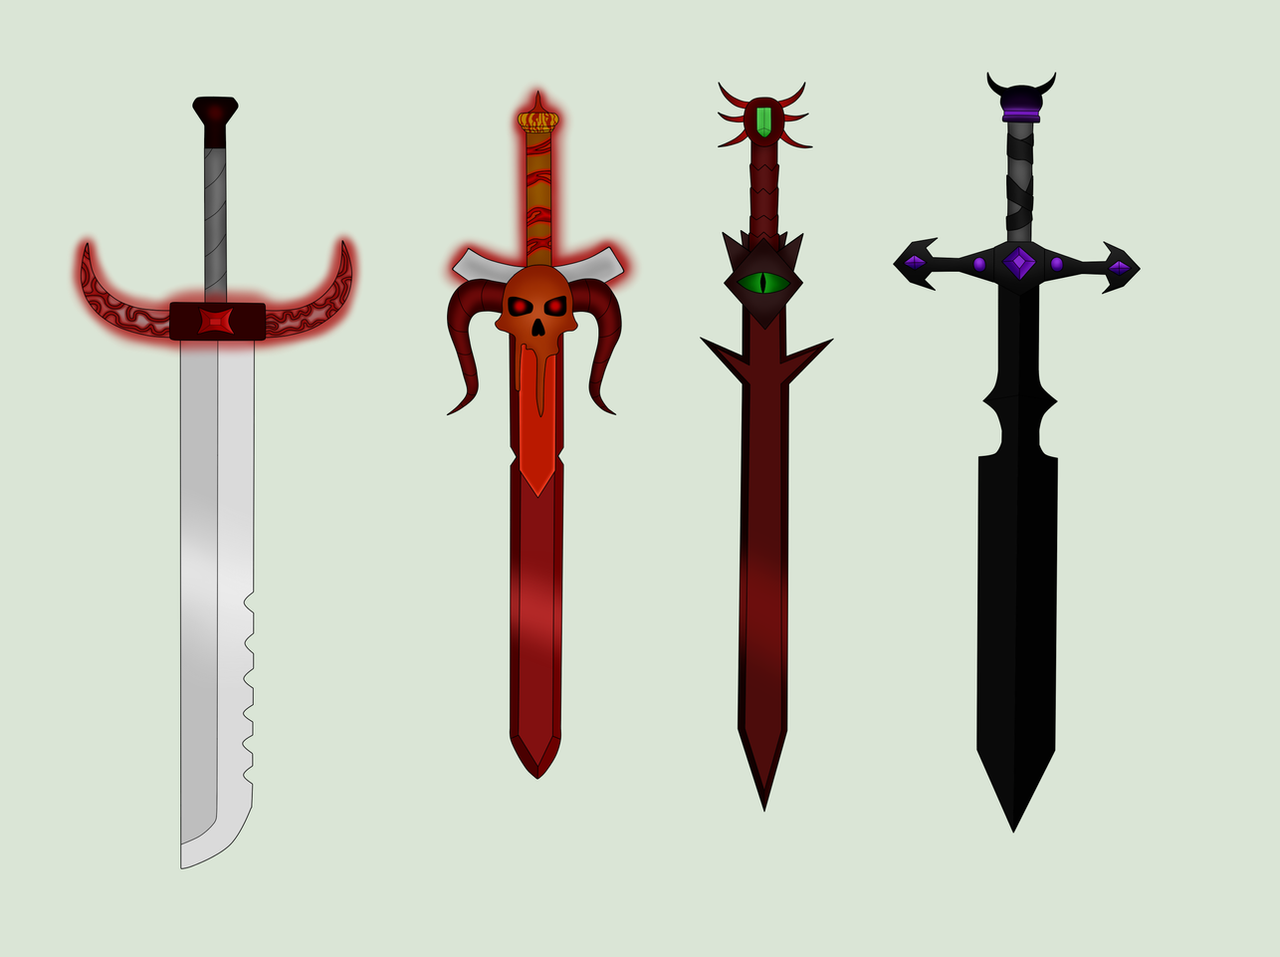 evil sword wallpaper - photo #5